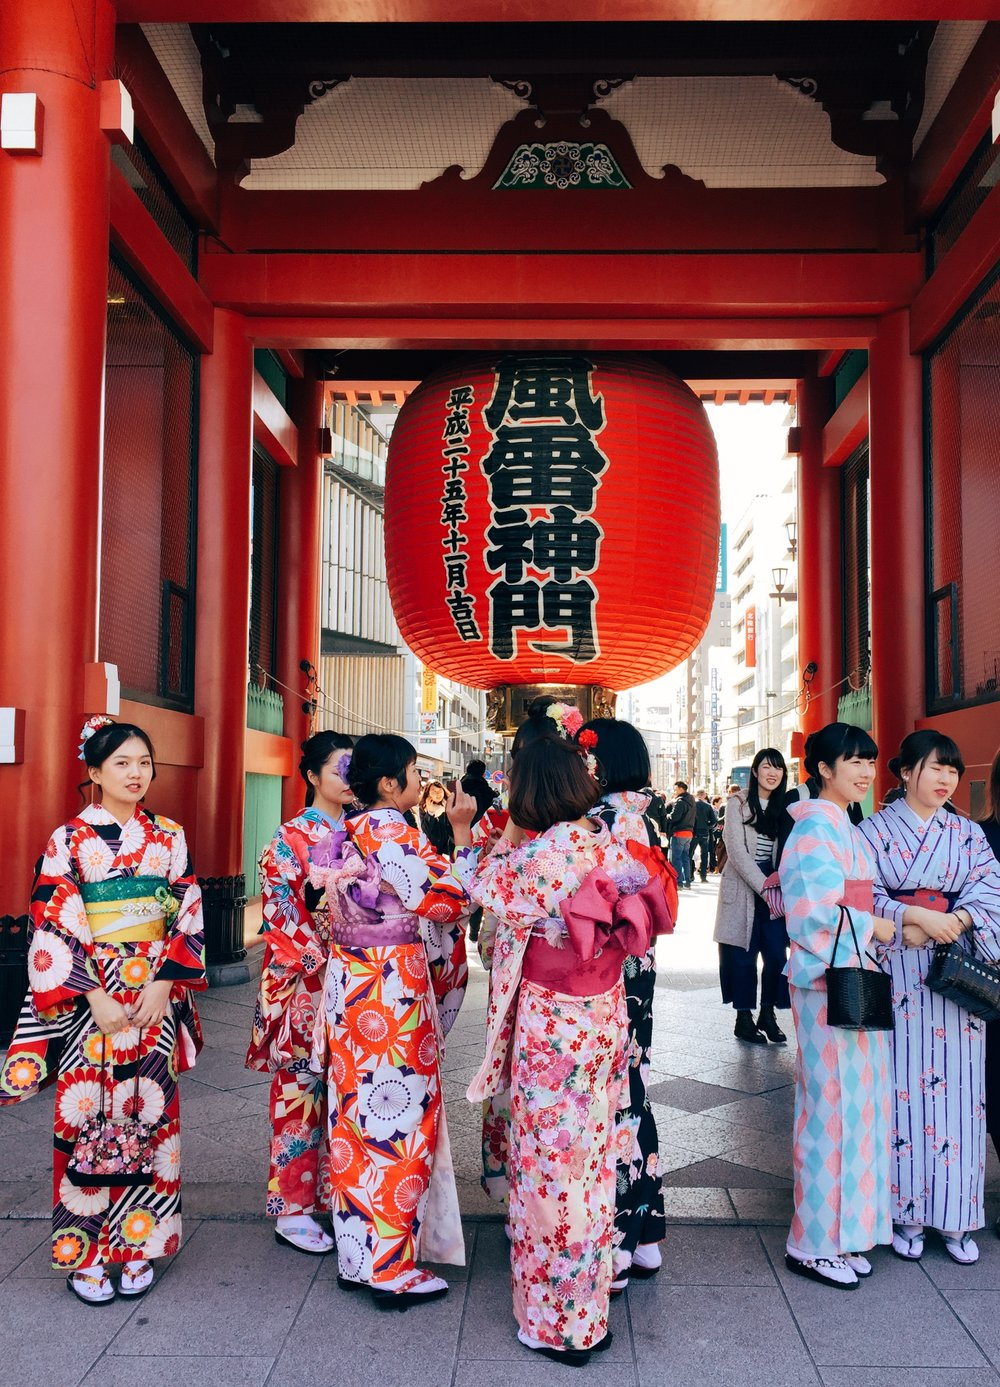 It's fun to see many people dressed up in  Kimonos  and  Yukatas  around Asakusa. A great learning opportunity about traditional clothing! I got the kid a  Yukata  from one of the souvenir shops in Asakusa.